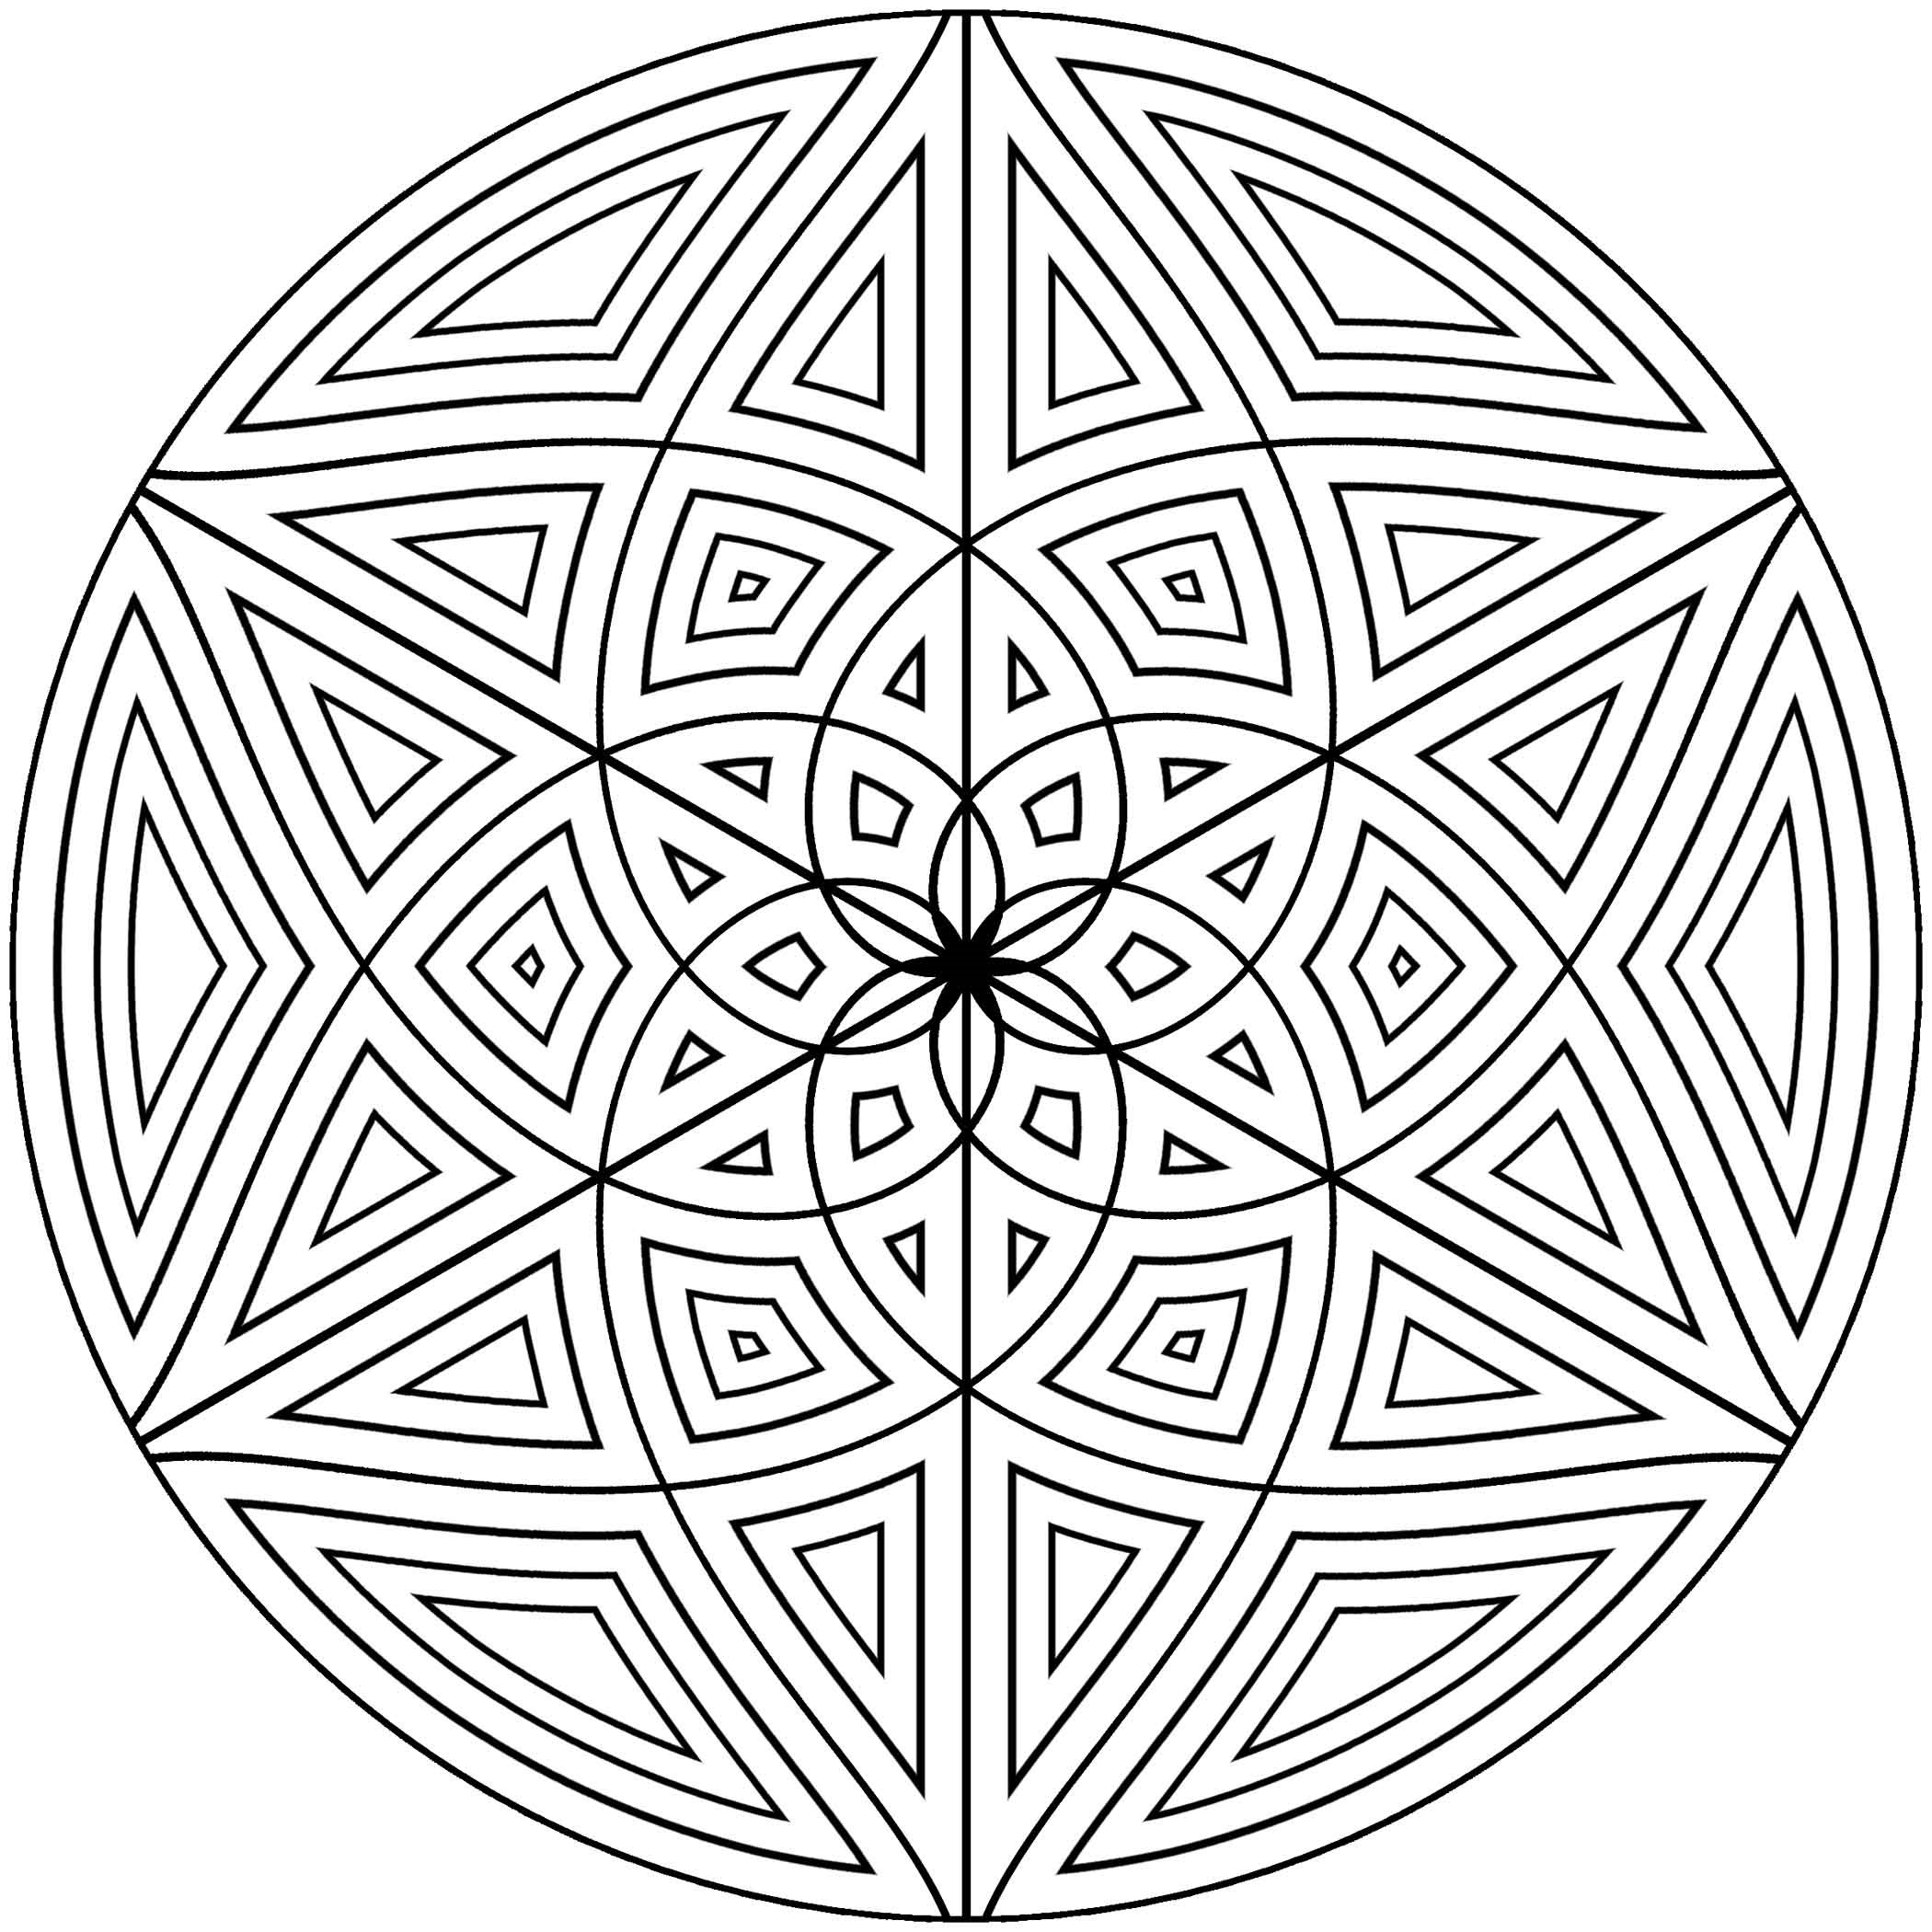 cool pattern coloring pages 16 cool coloring pages of designs images cool geometric cool pages pattern coloring